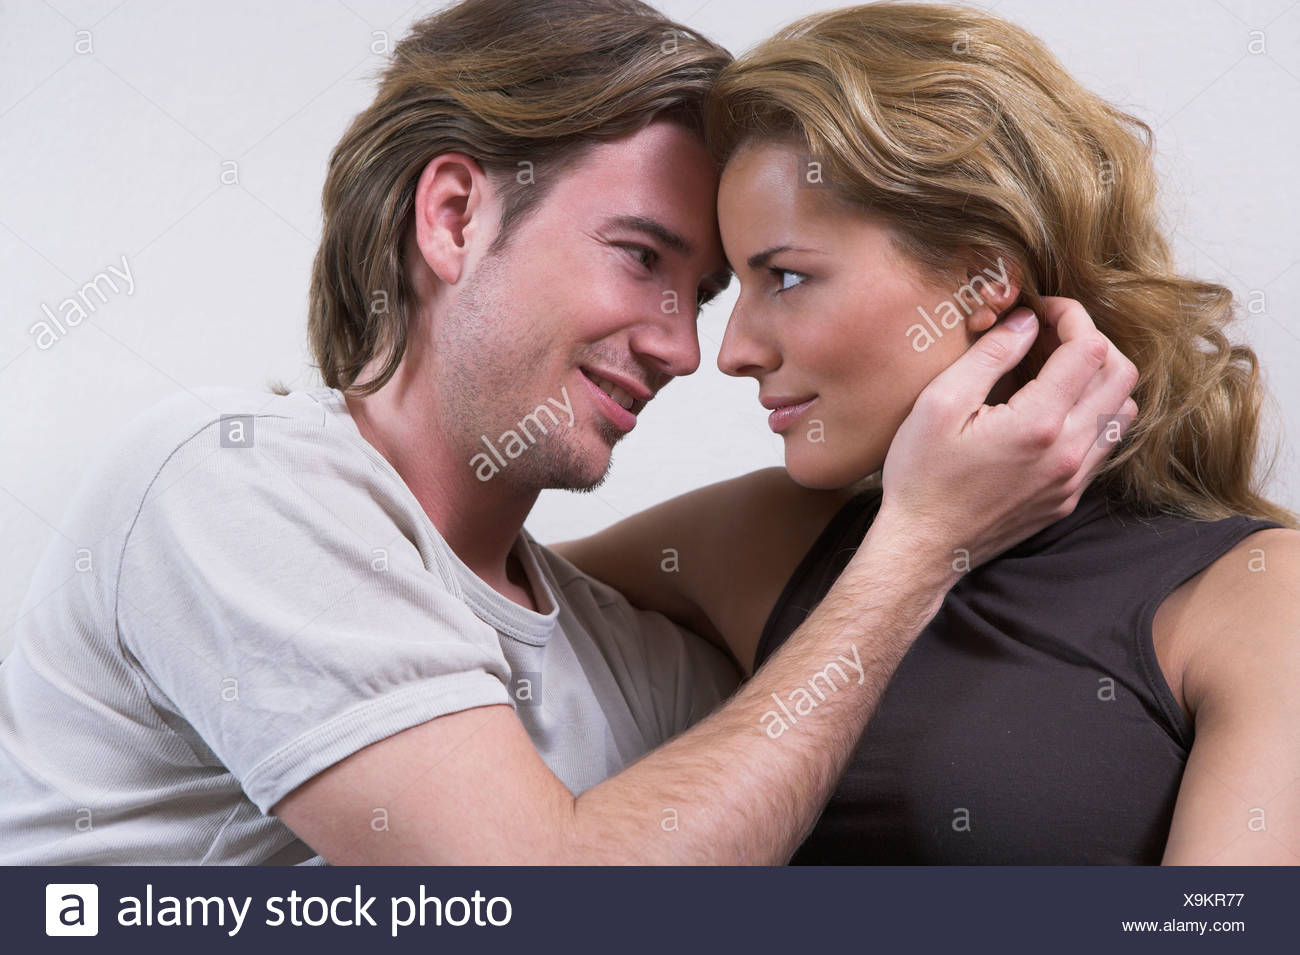 portrait of young couple tenderly looking at each other - Stock Image